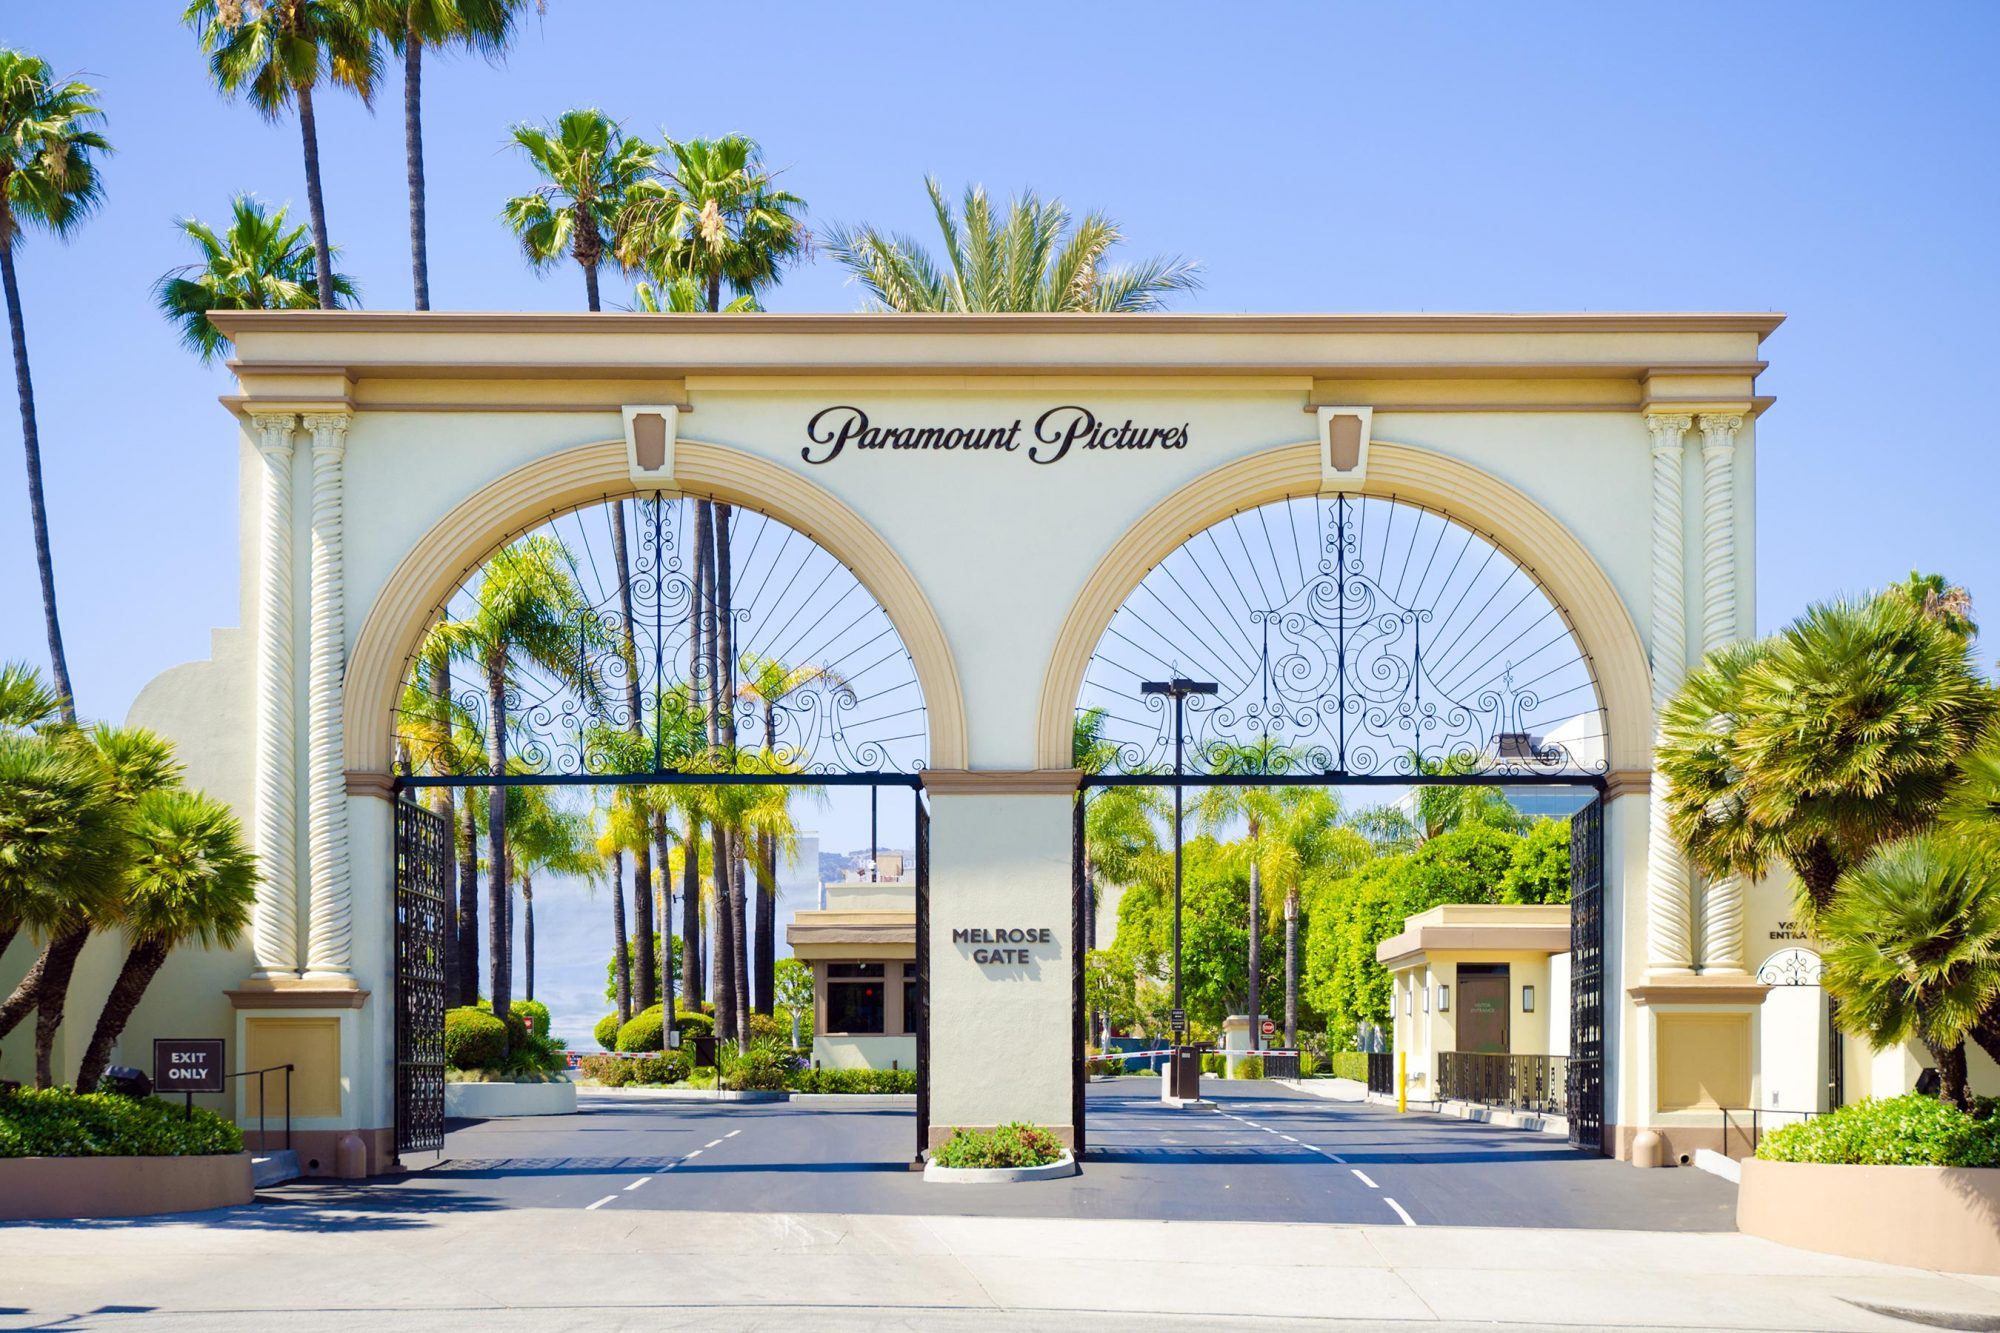 Melrose Gate entrance to Paramount Pictures in Los Angeles, CA